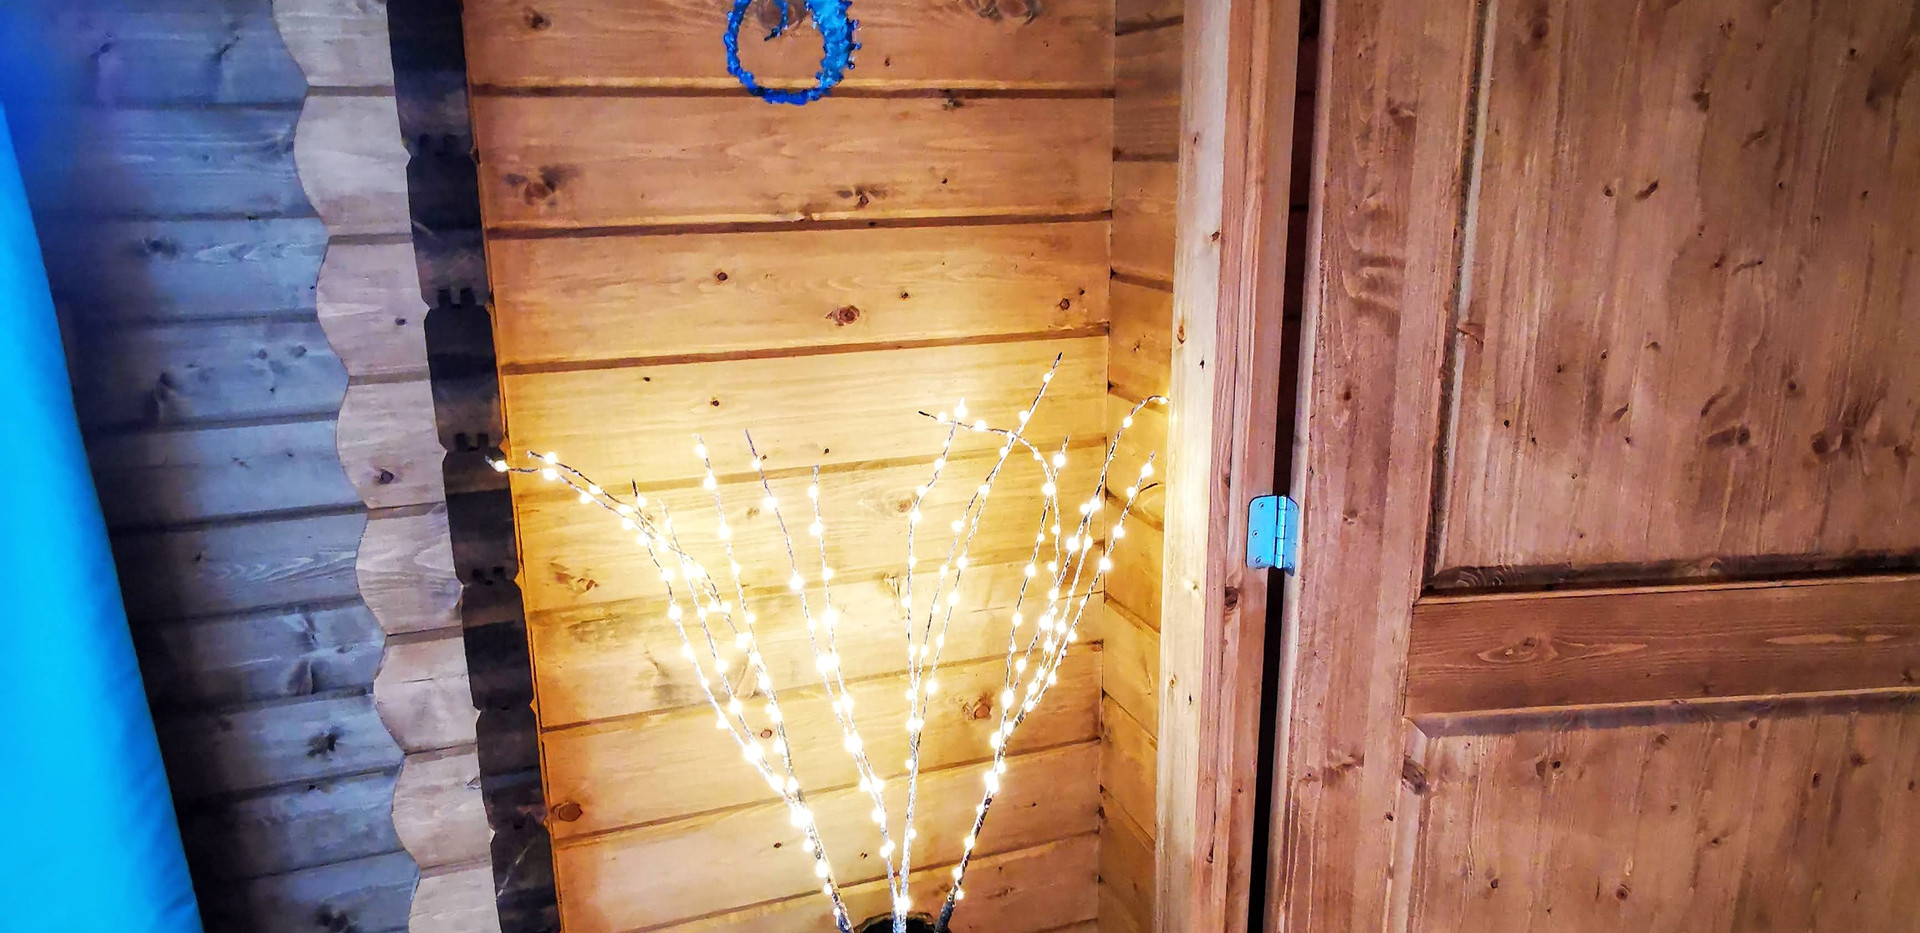 Seahorse mural and twig lights in Mam@Cw